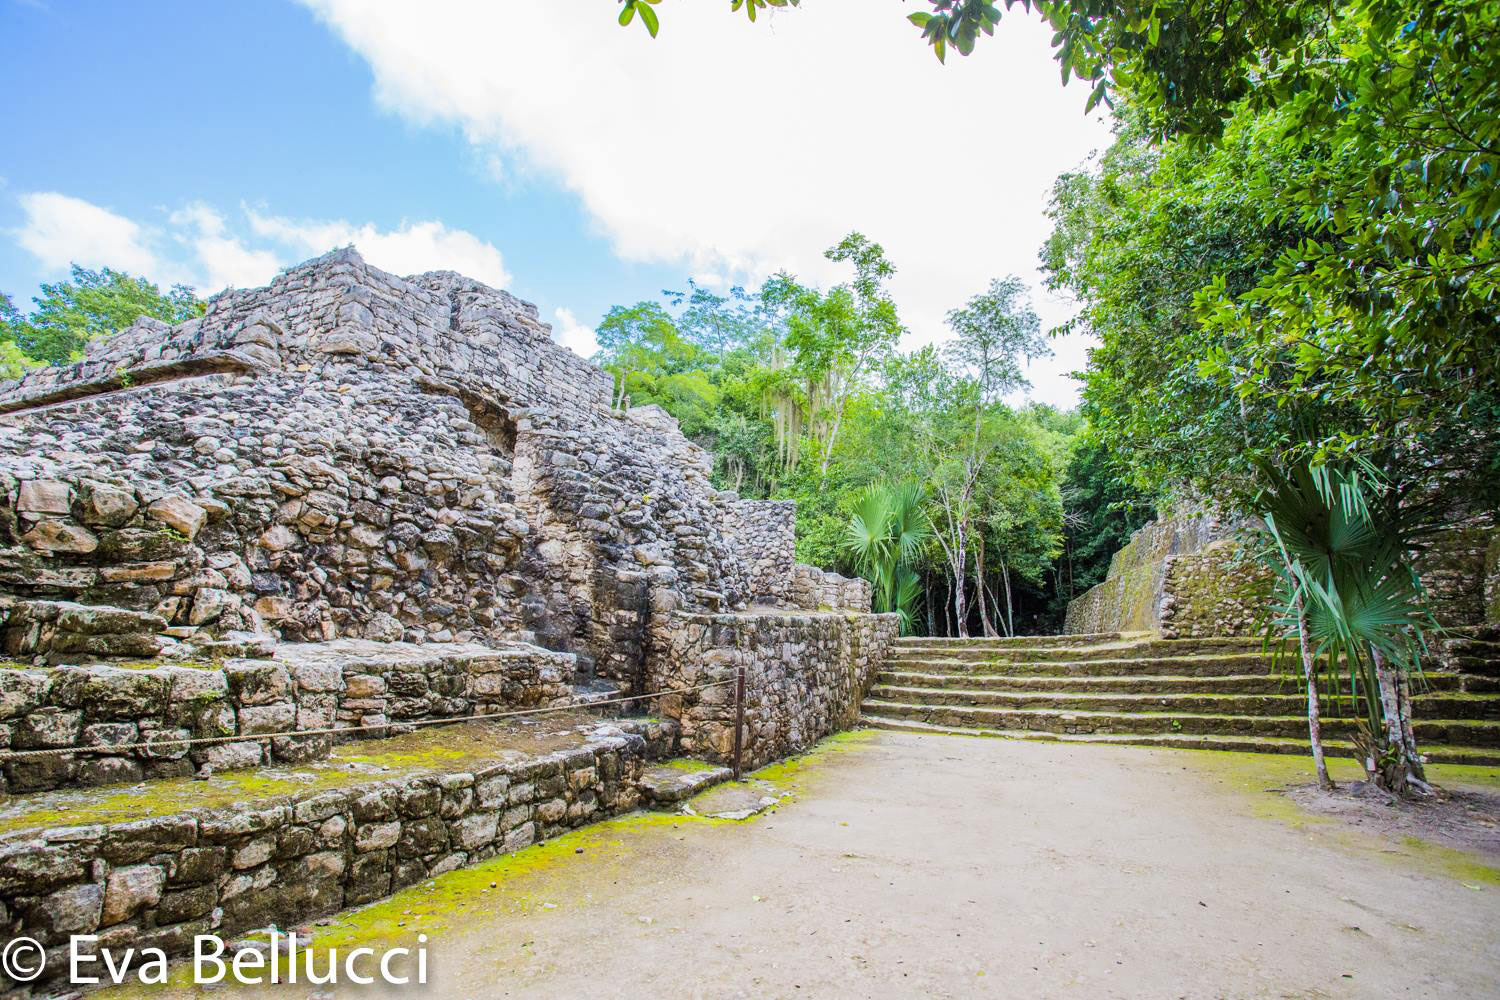 The back of the Ball court at the Cobá Group. On the right: the main ball court, on the way to the pyramid.